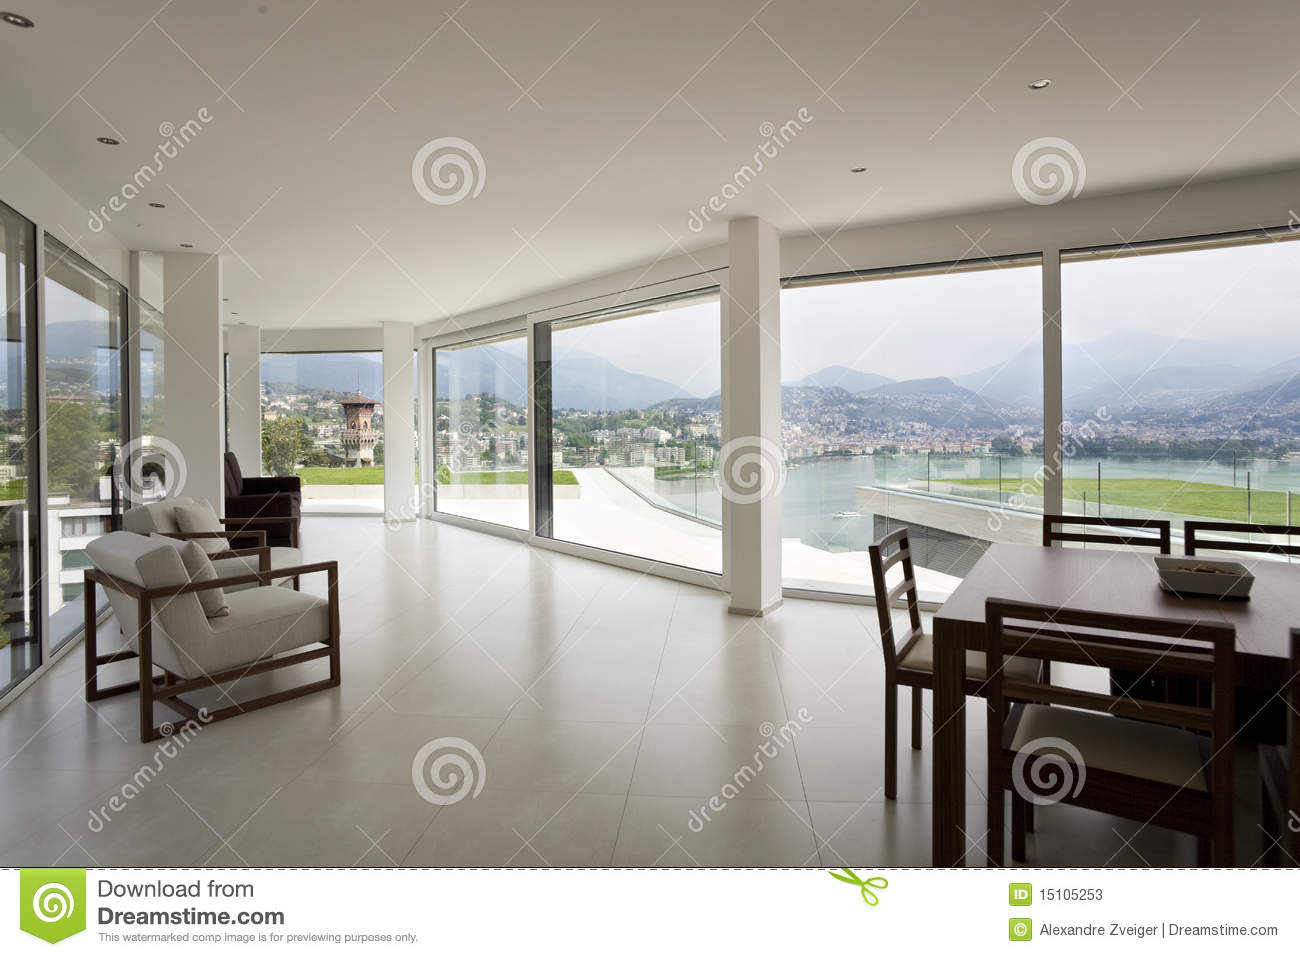 Bel int rieur d 39 une maison moderne photos stock image for Interieur moderne maison